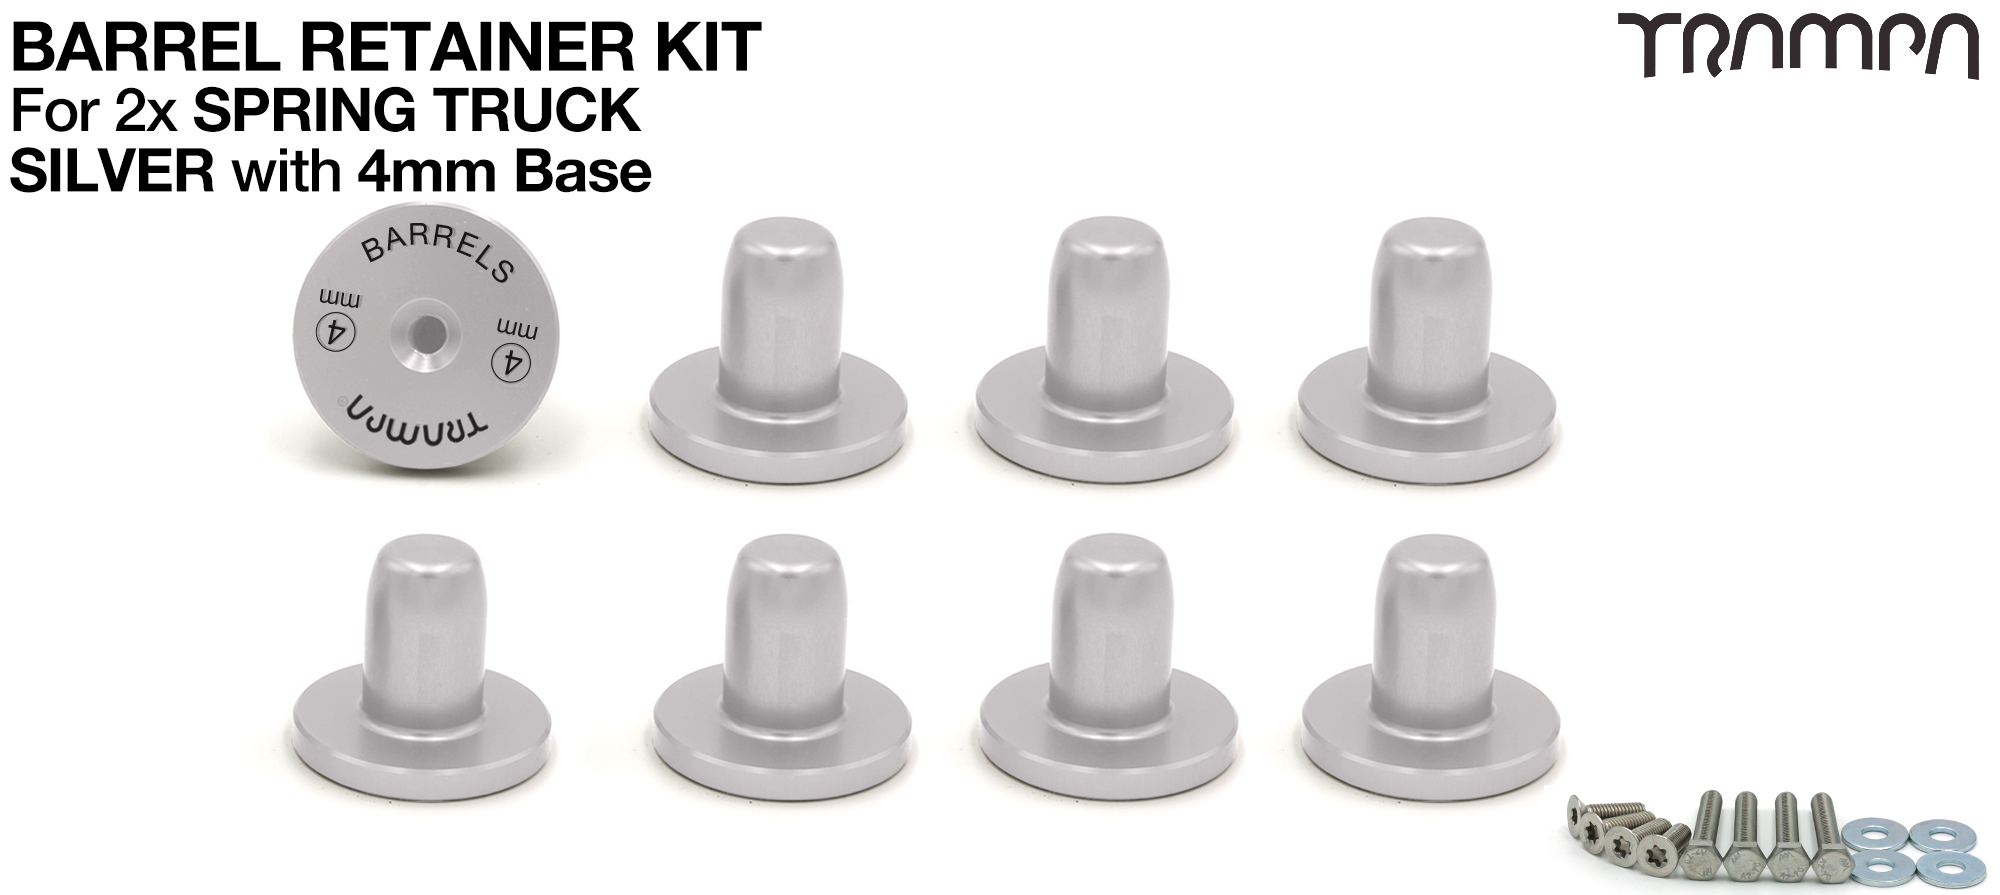 SILVER Barrel RETAINERS x8 with 4mm Base